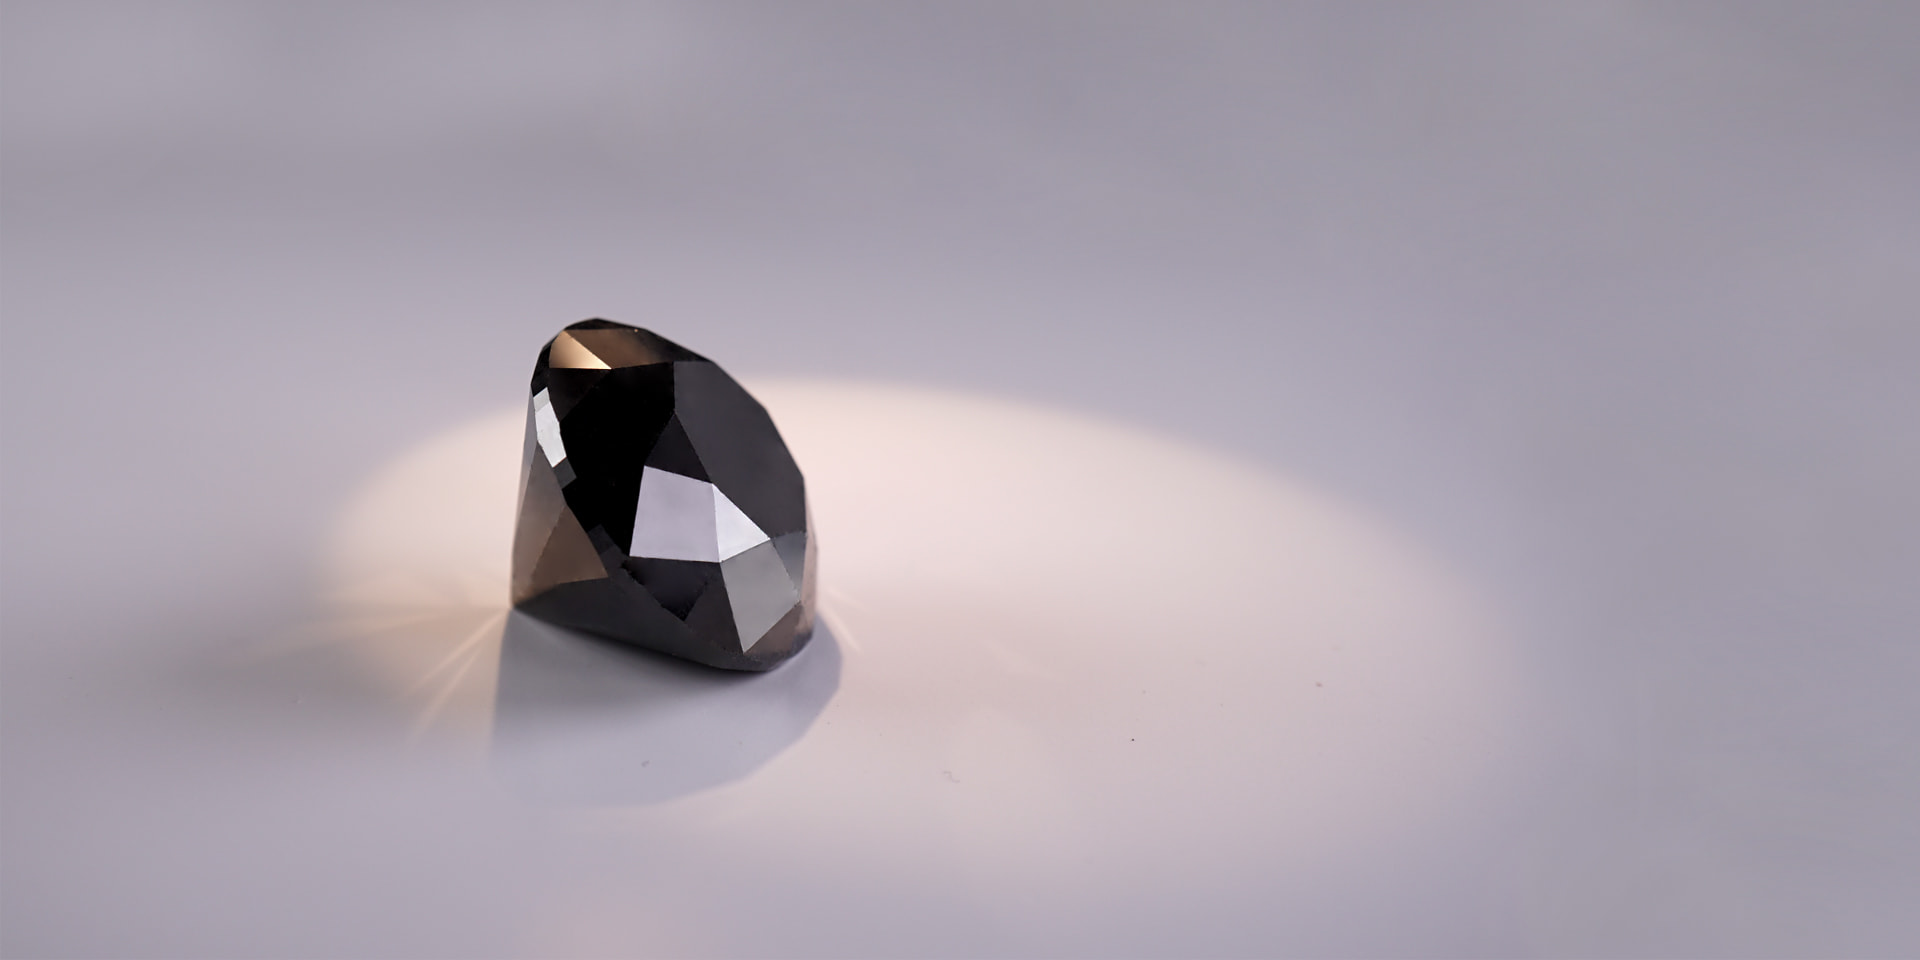 The black diamond Korloff Noir